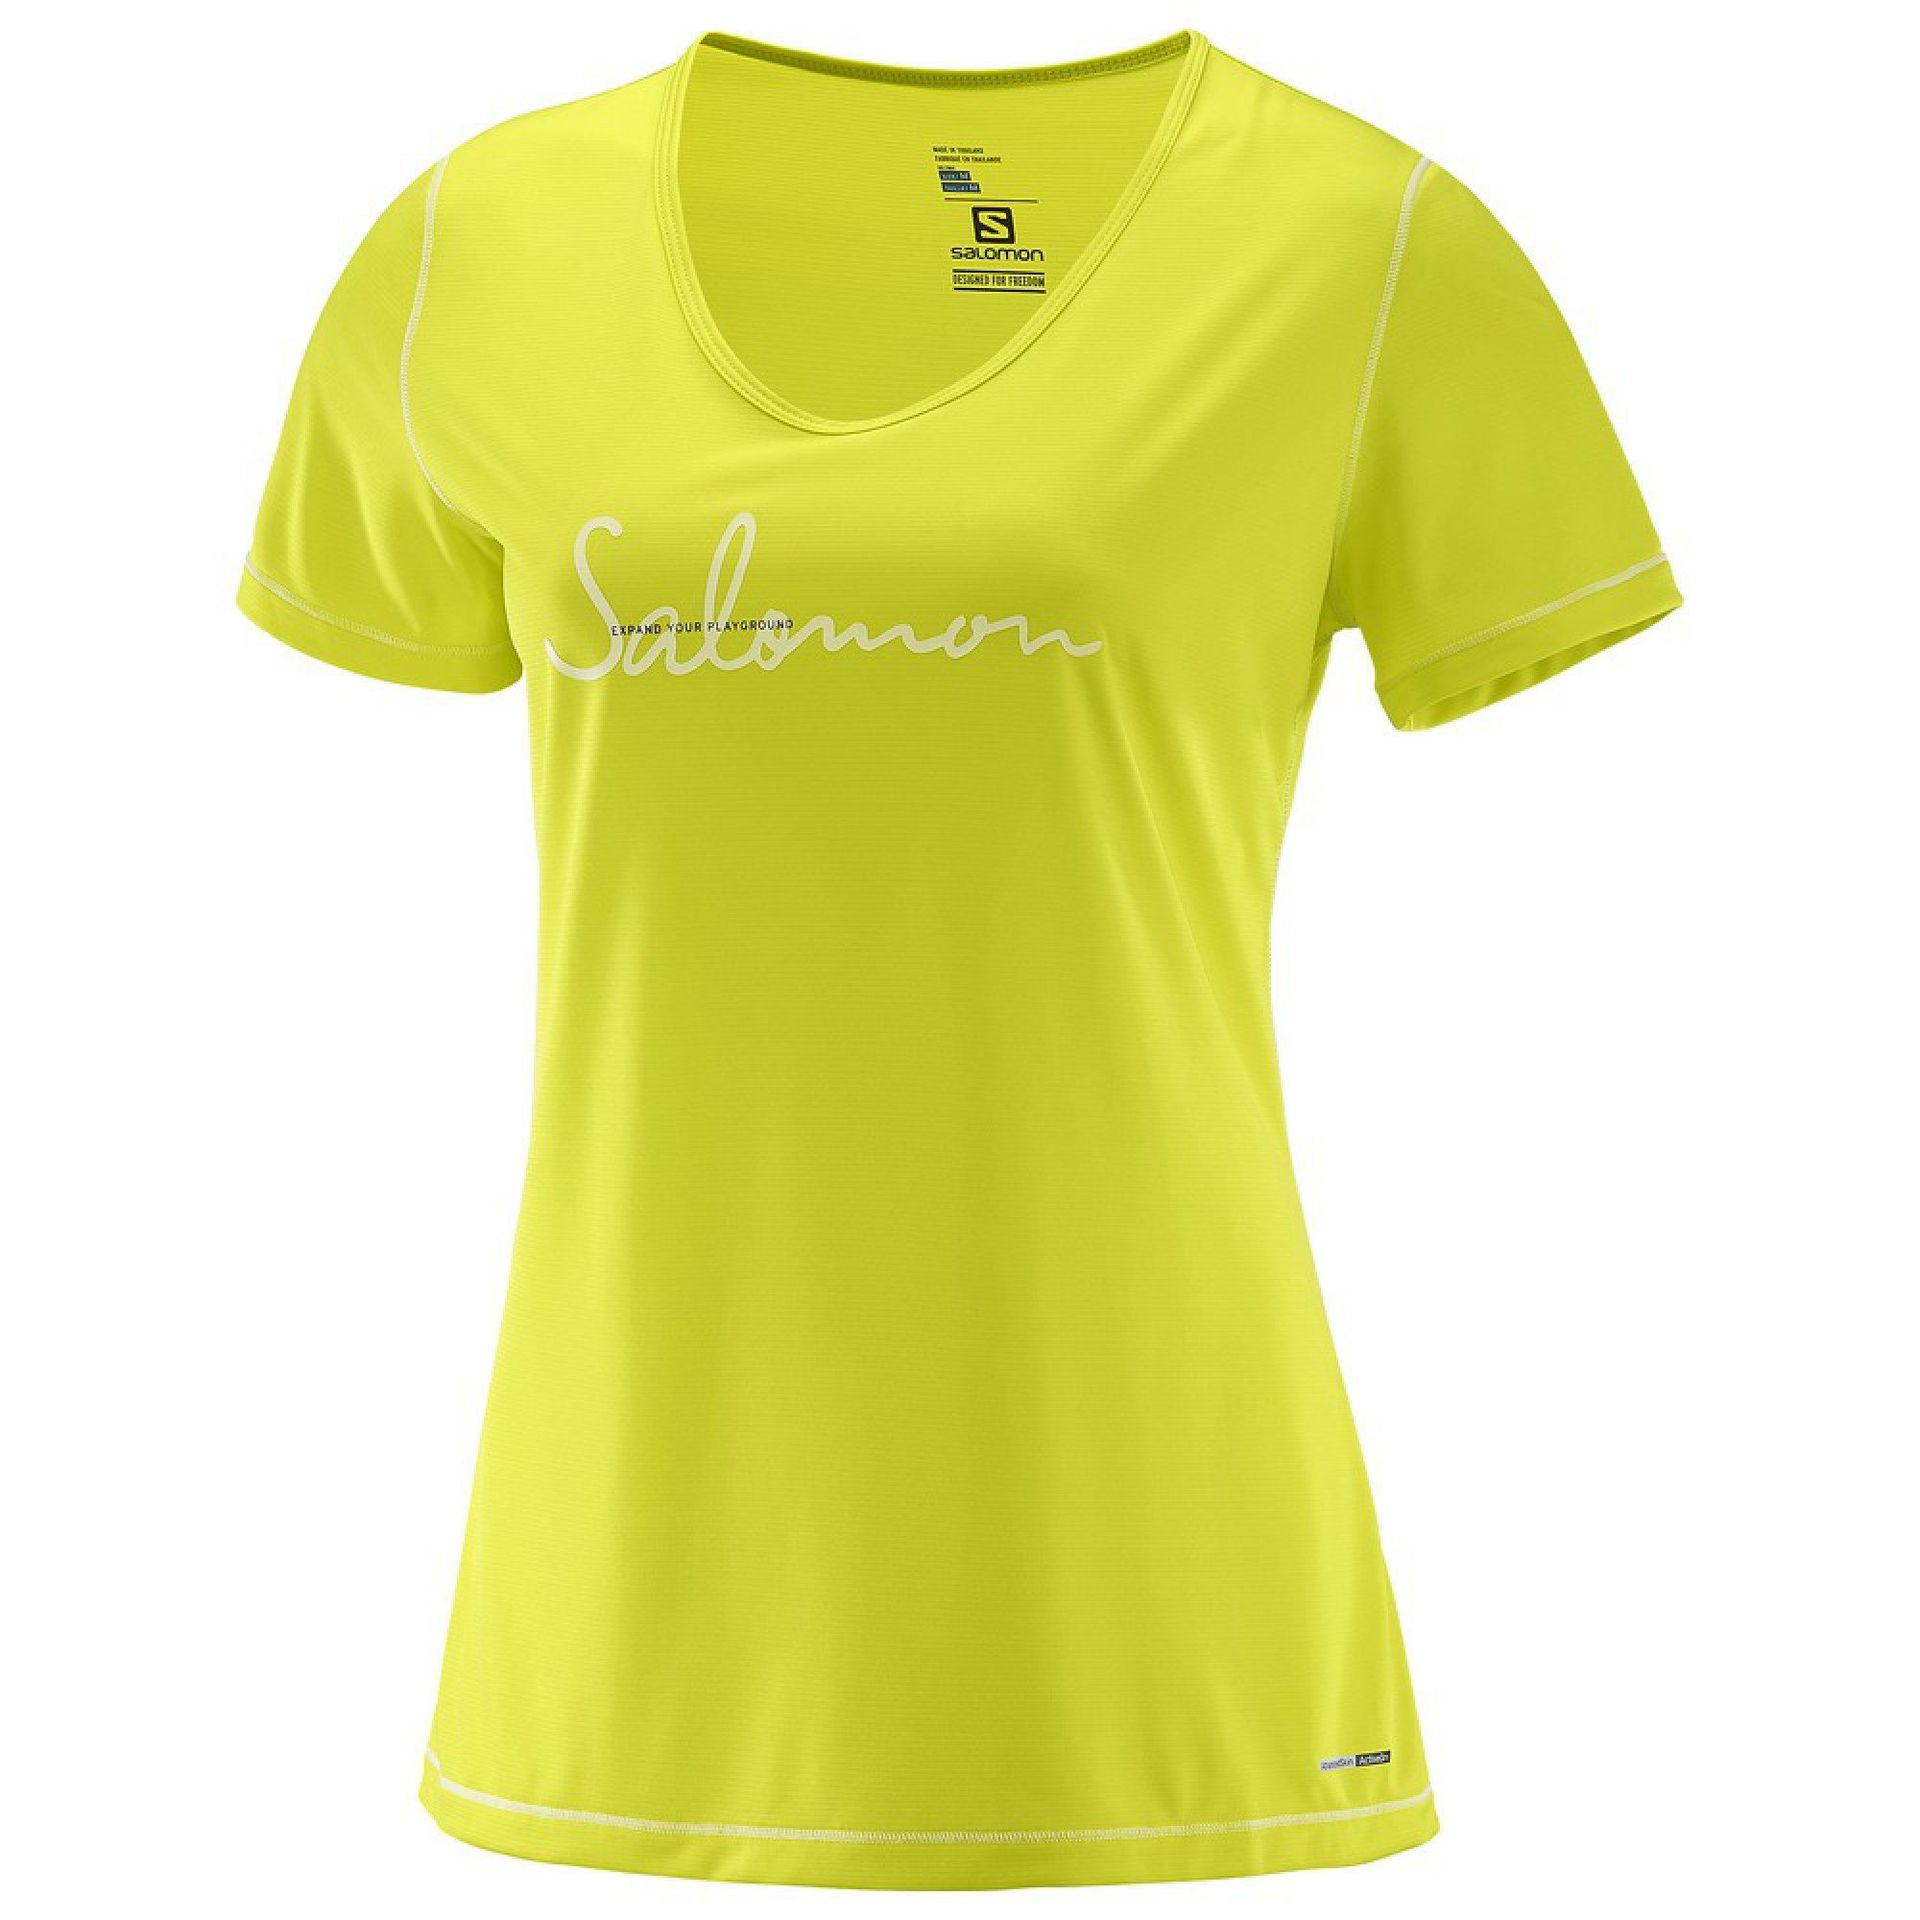 T-SHIRT SALOMON MAZY GRAPHIC SULPHUR